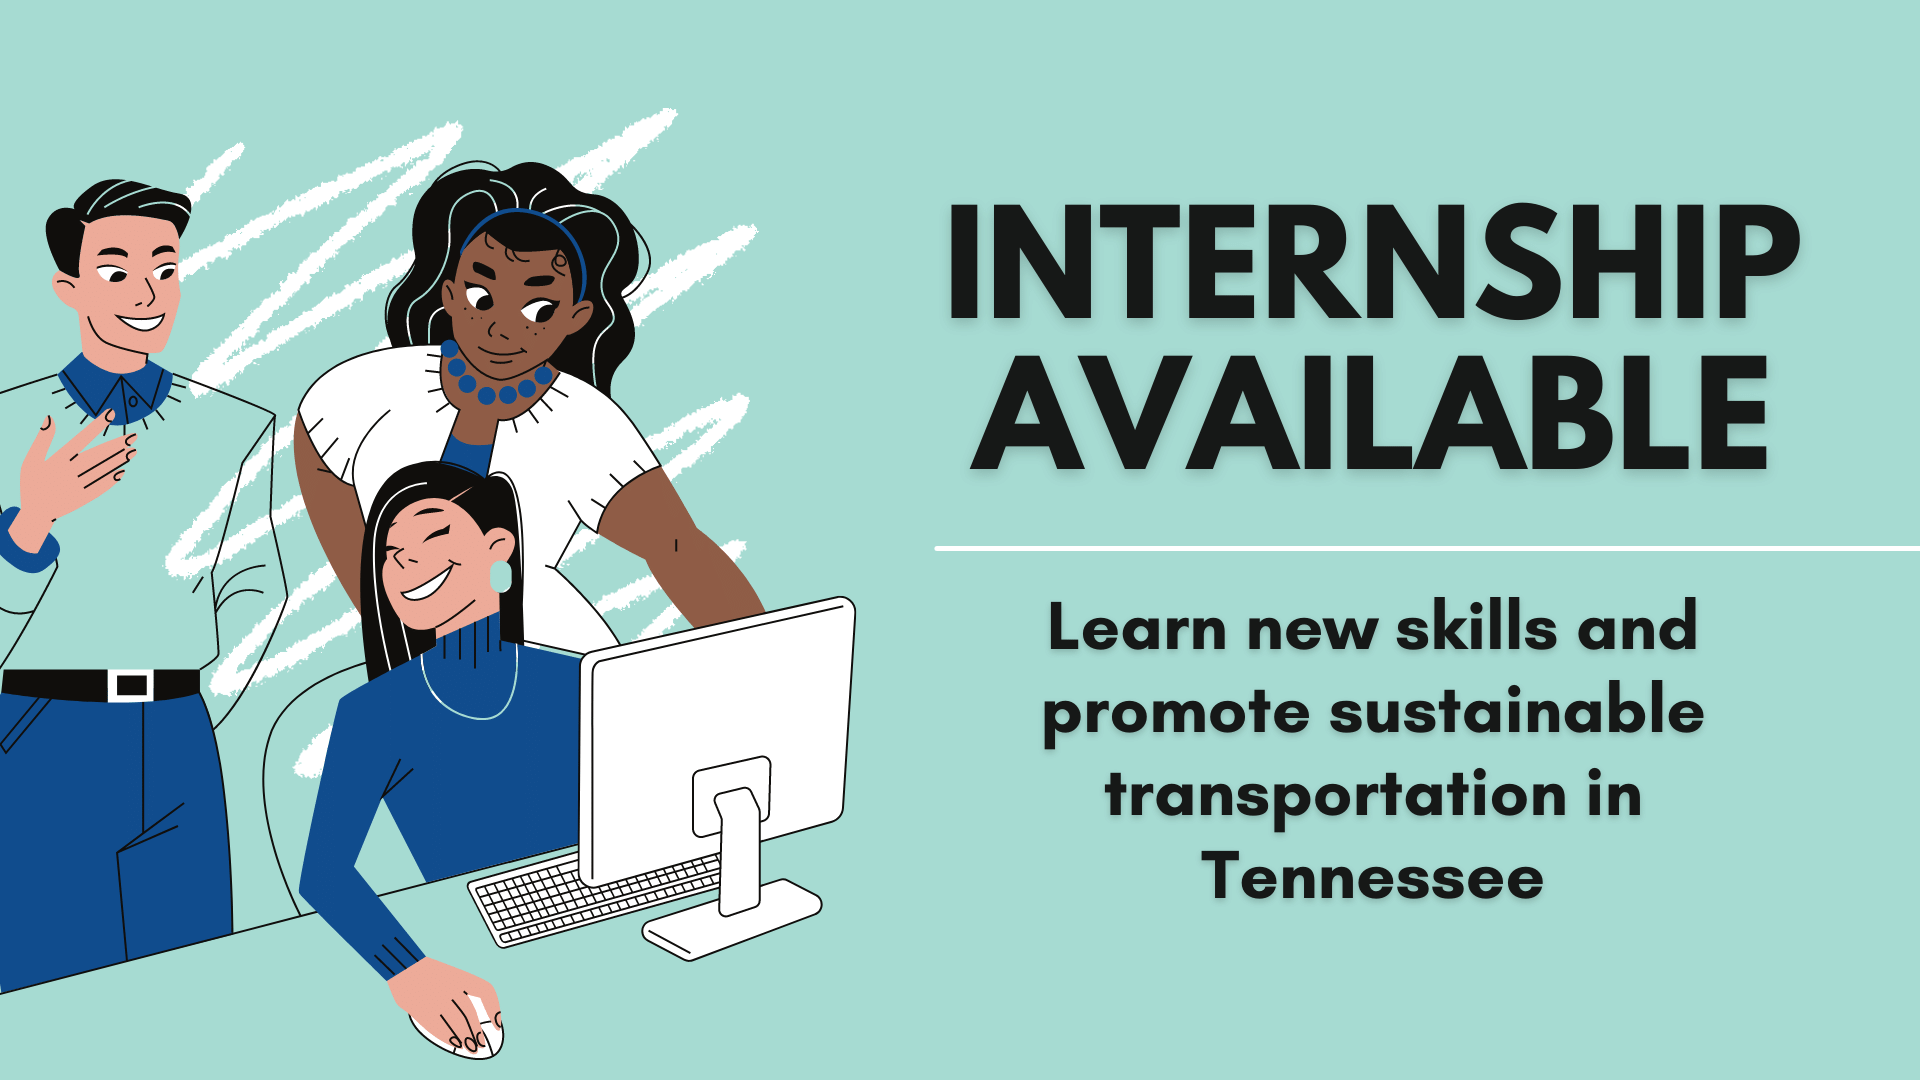 3 people gathered around computer, teal background, 'Internship Available: Learn new skills and promote sustainable transportation in Tennessee'